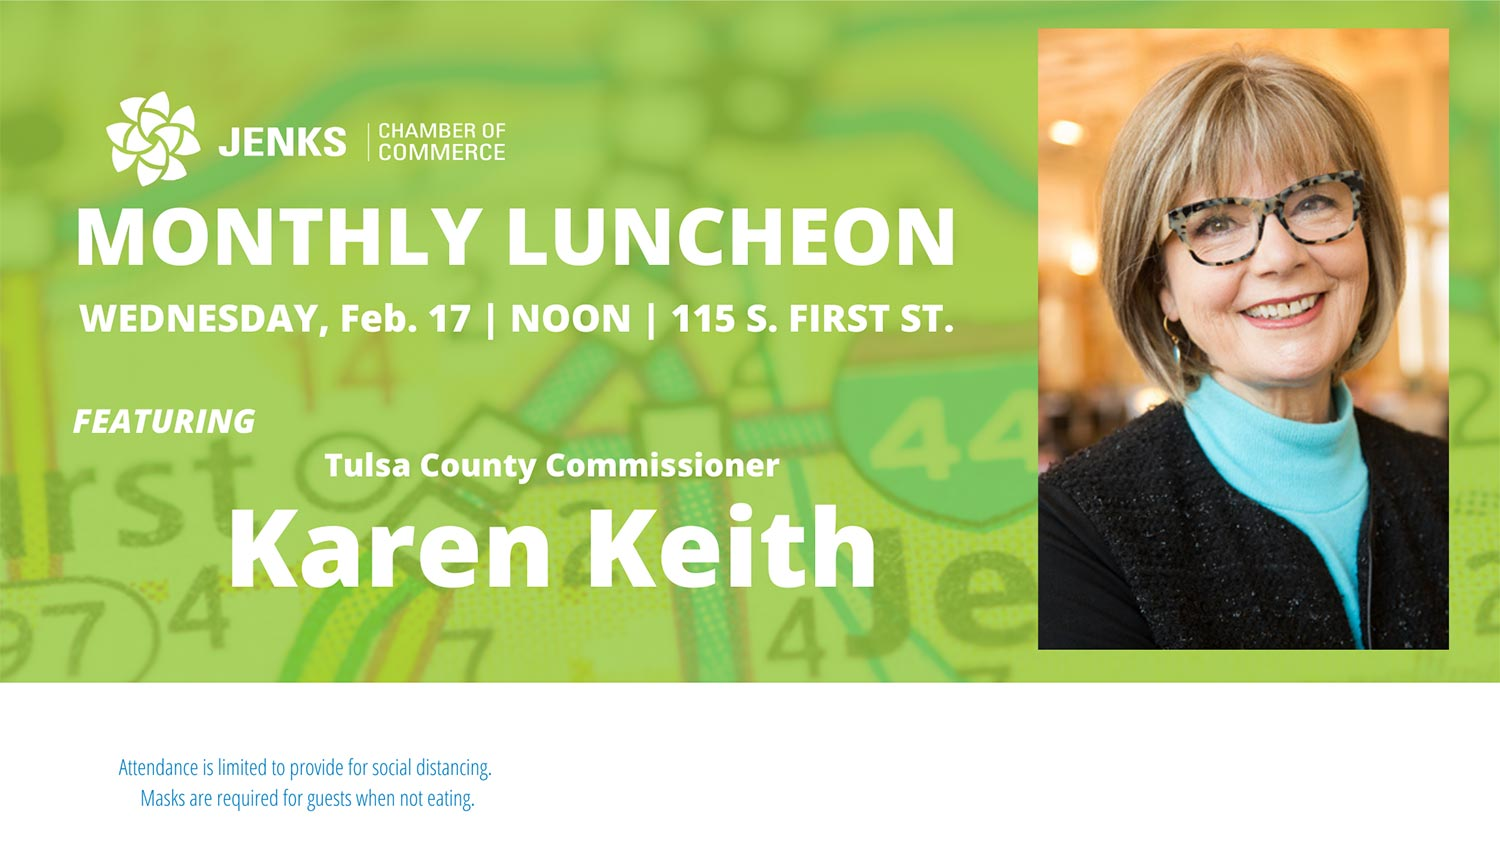 County Commissioner Karen Keith to speak at Monthly Luncheon.